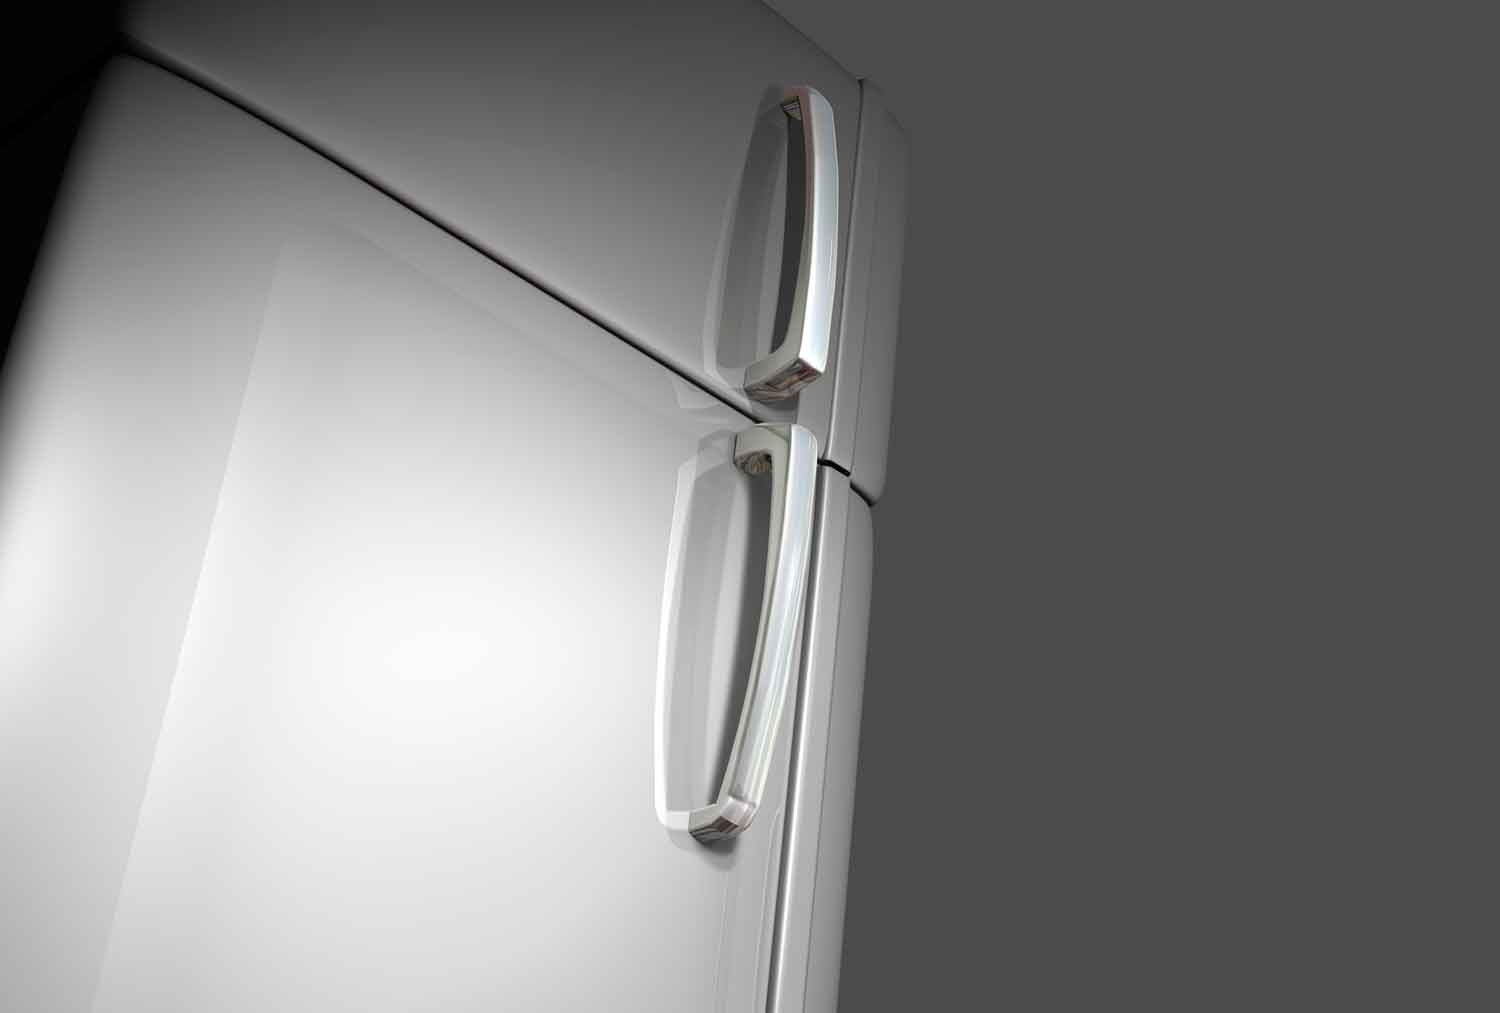 Refrigerator Repairs Manchester Carters Appliance Care